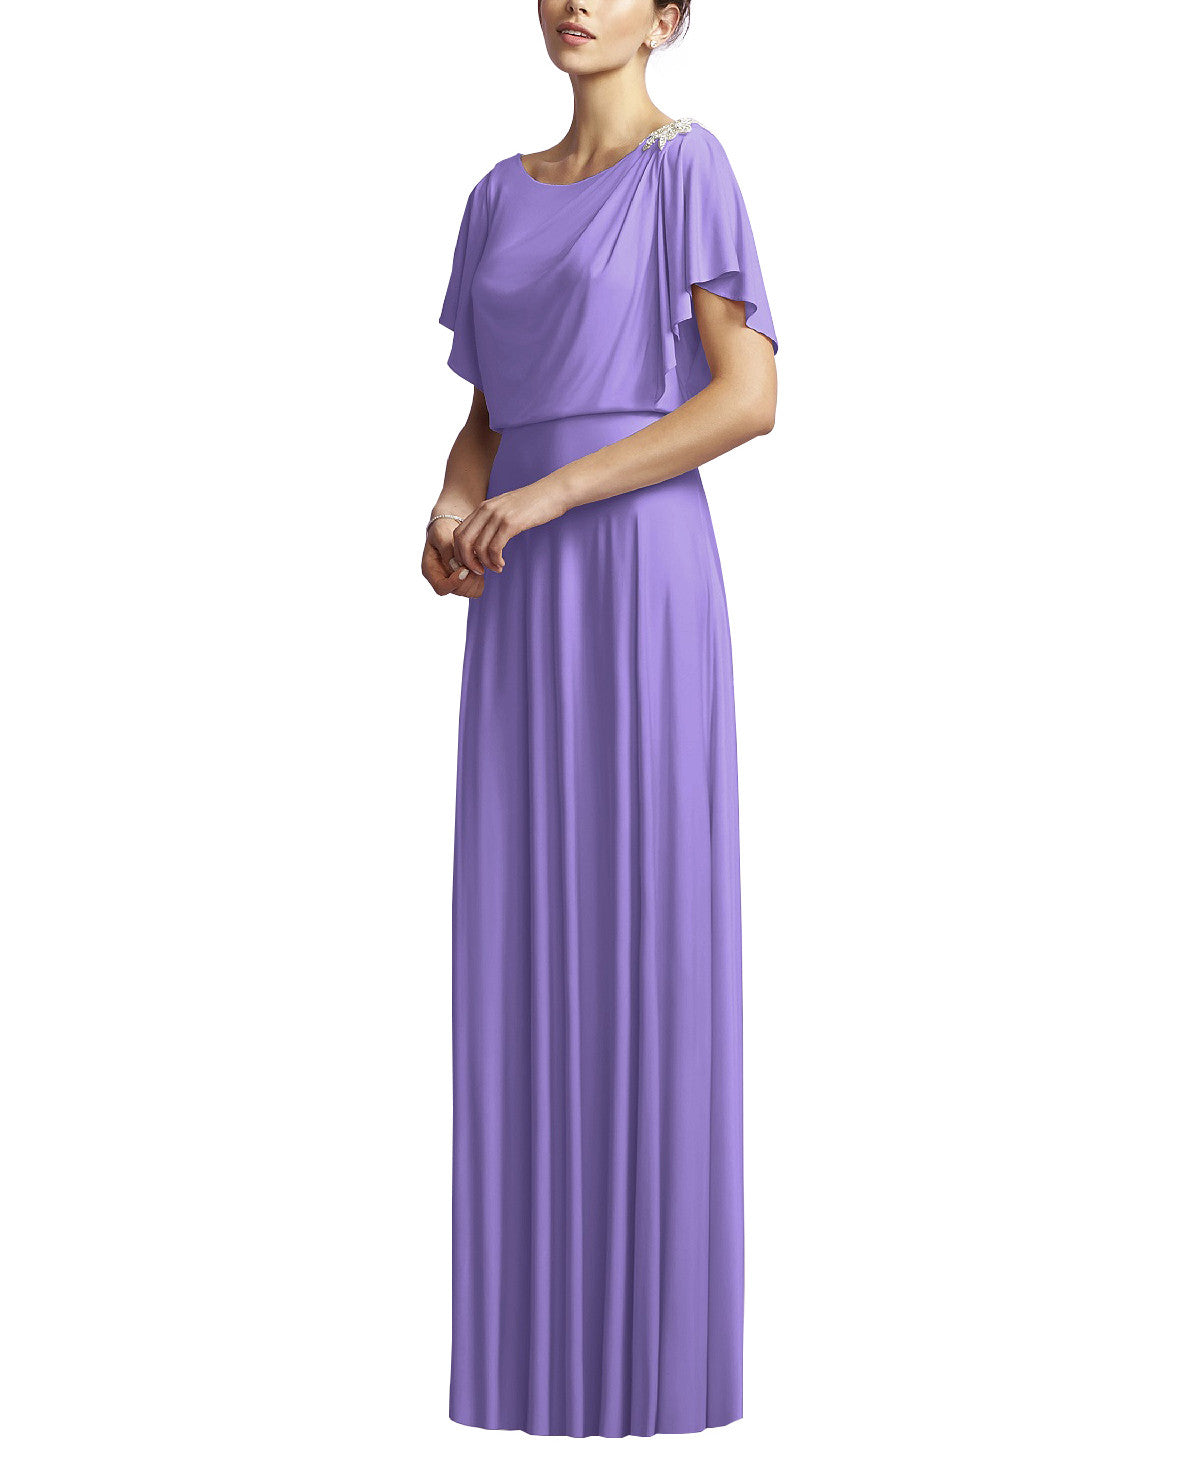 JY Jenny Yoo Style JY511 Bridesmaid Dress